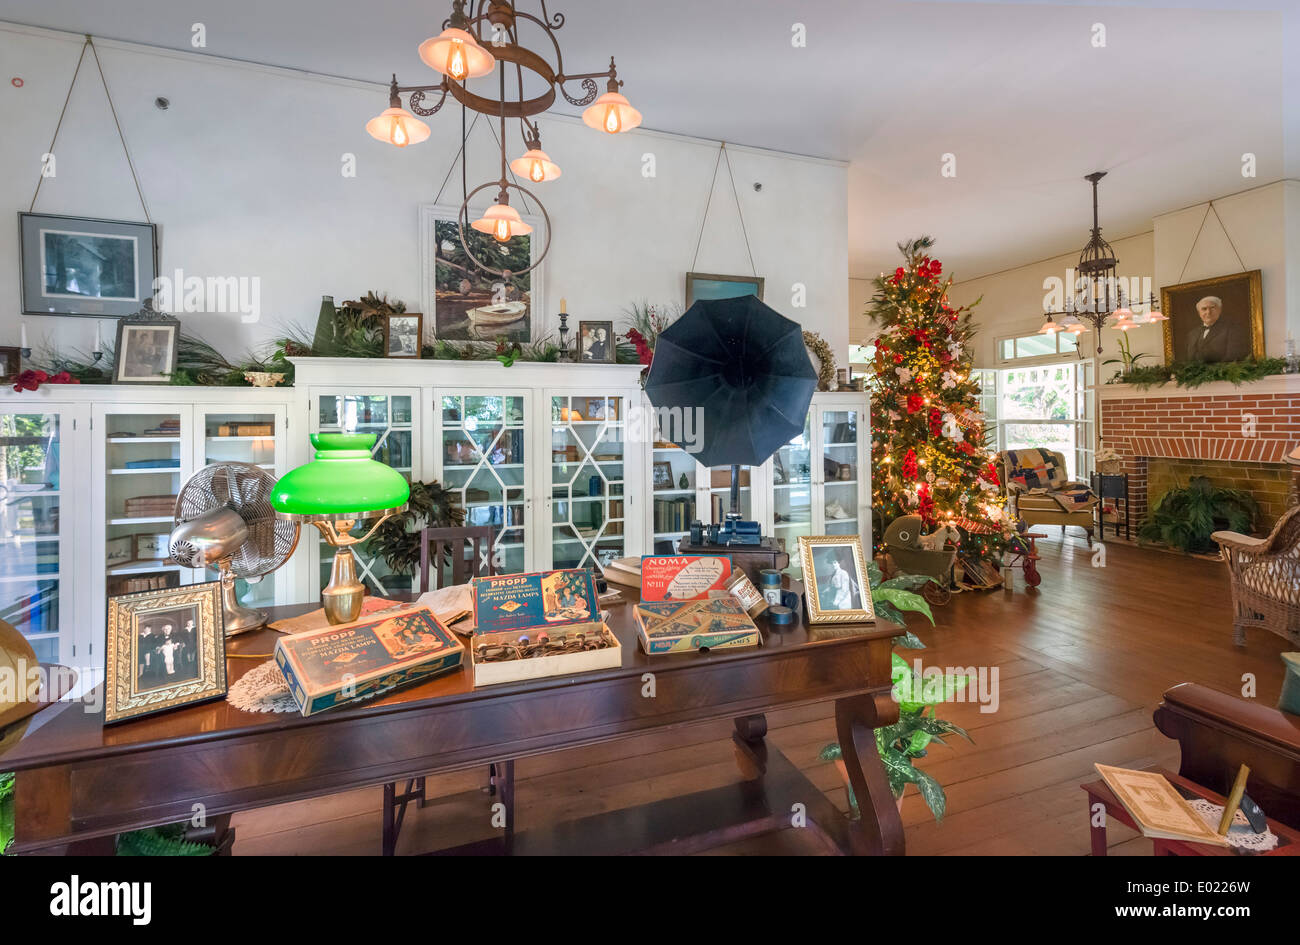 Interior of Seminole Lodge, Thomas Edison's winter home, Edison and Ford Winter Estates, Fort Myers, Florida, USA Stock Photo